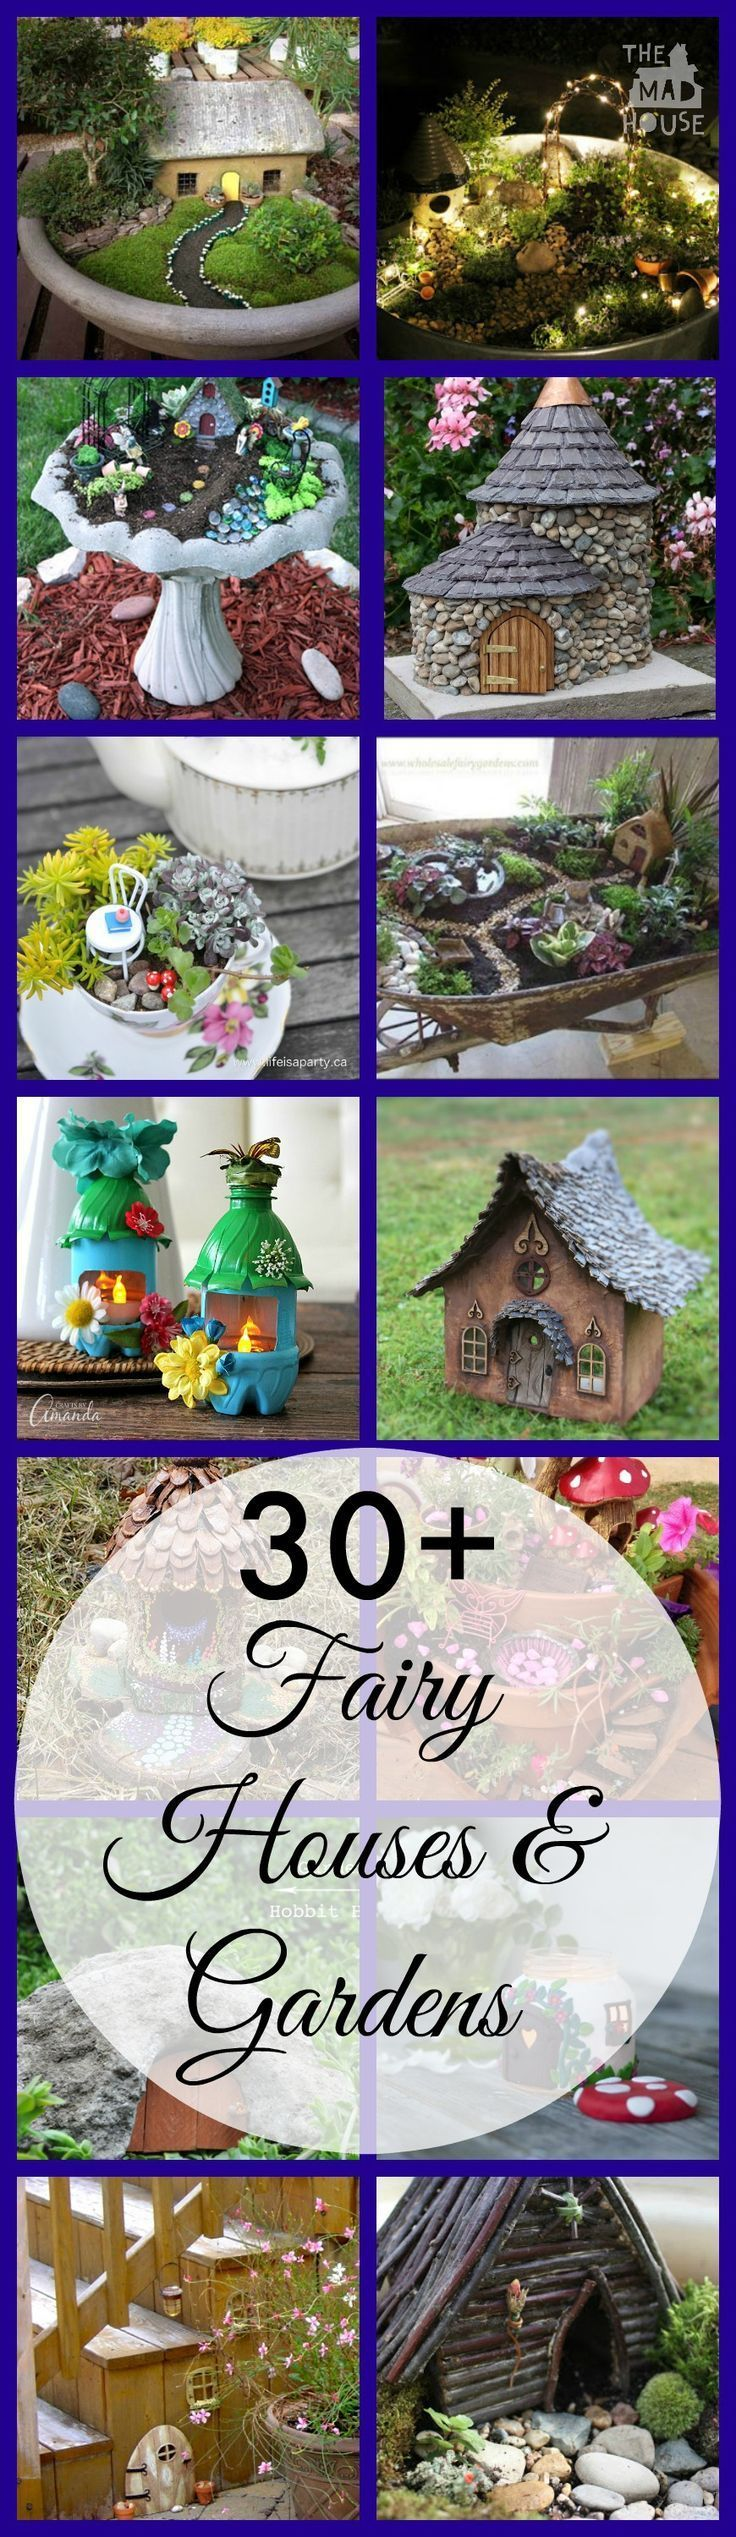 Fabulous Fairy Gardens and Houses - http://www.oroscopointernazionaleblog.com/fabulous-fairy-gardens-and-houses/